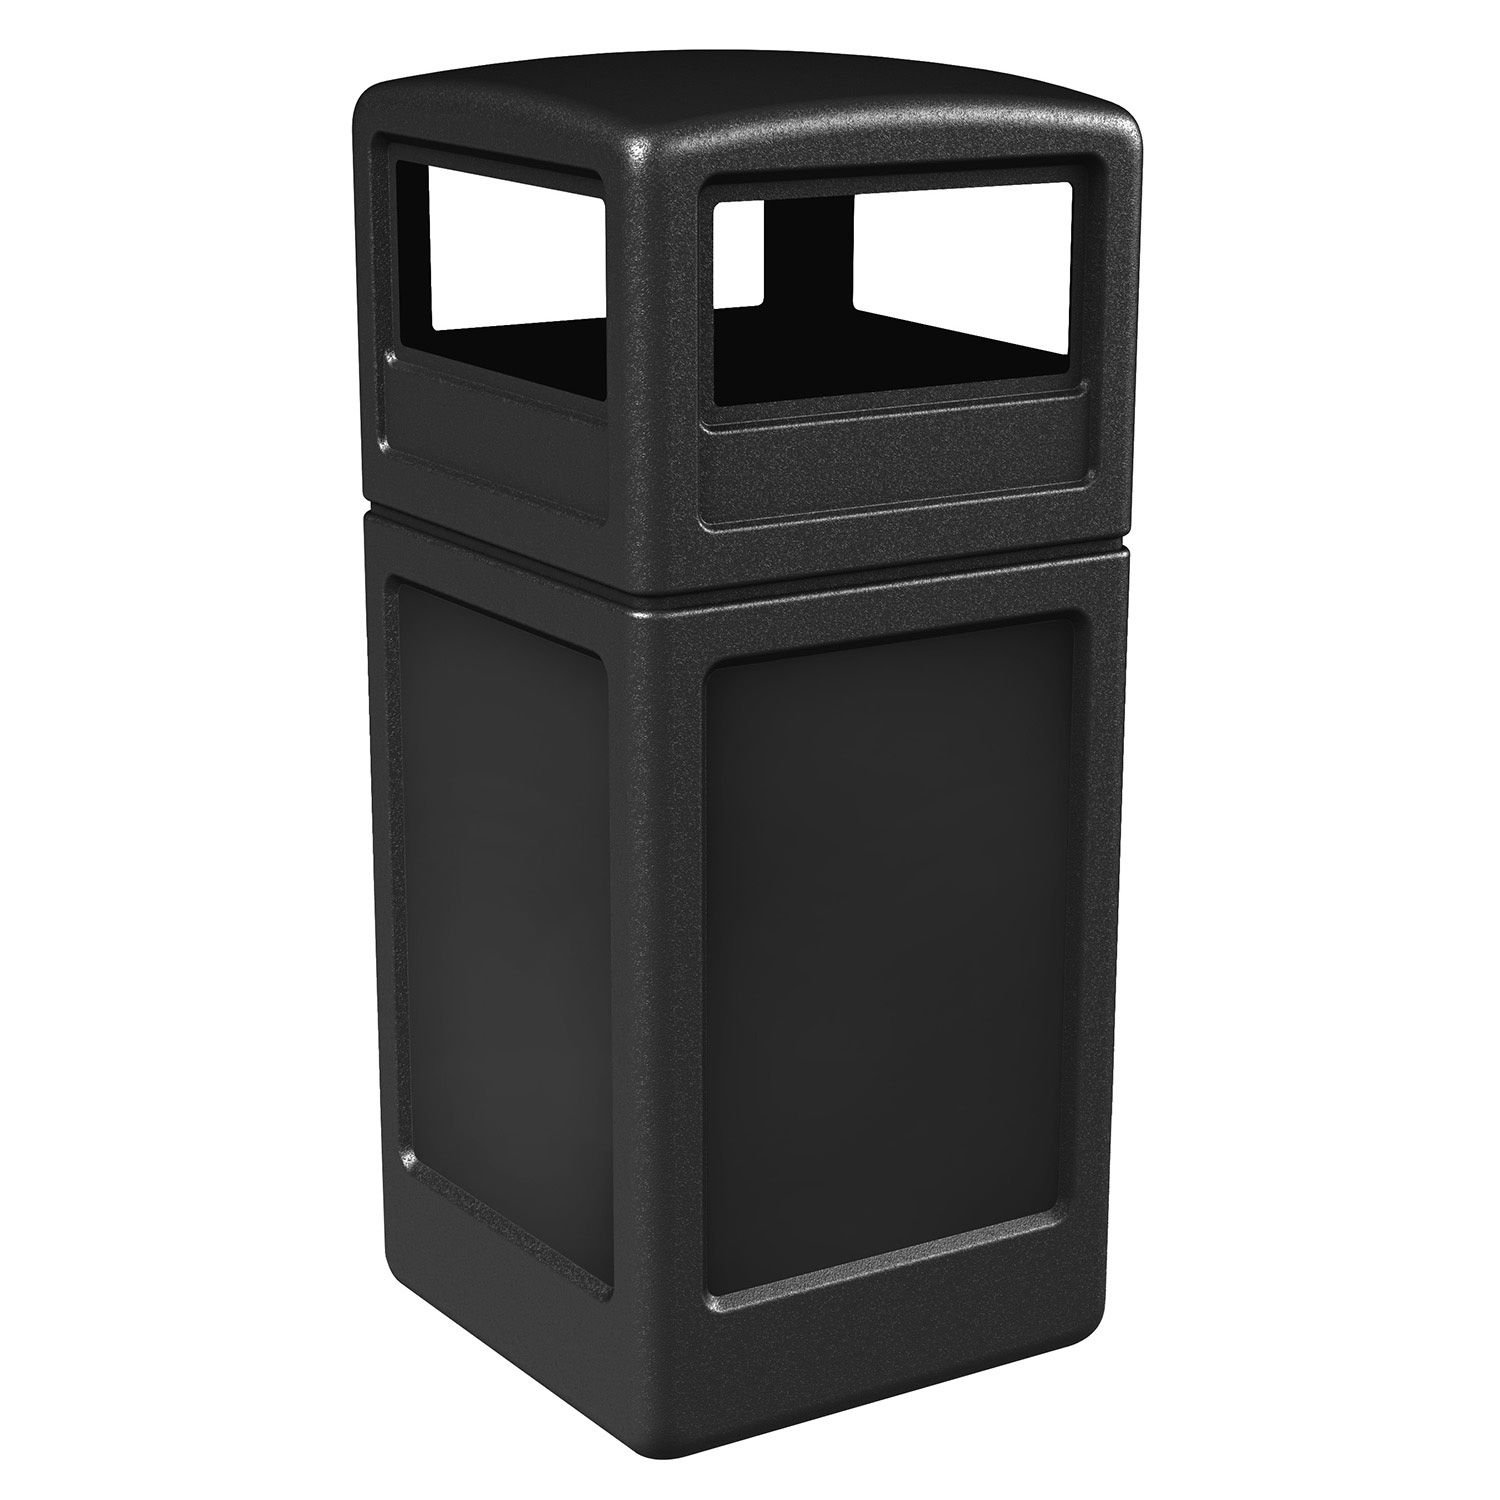 Commercial Zone Square Waste Container with Dome Lid Polyethylene 42 gal Black